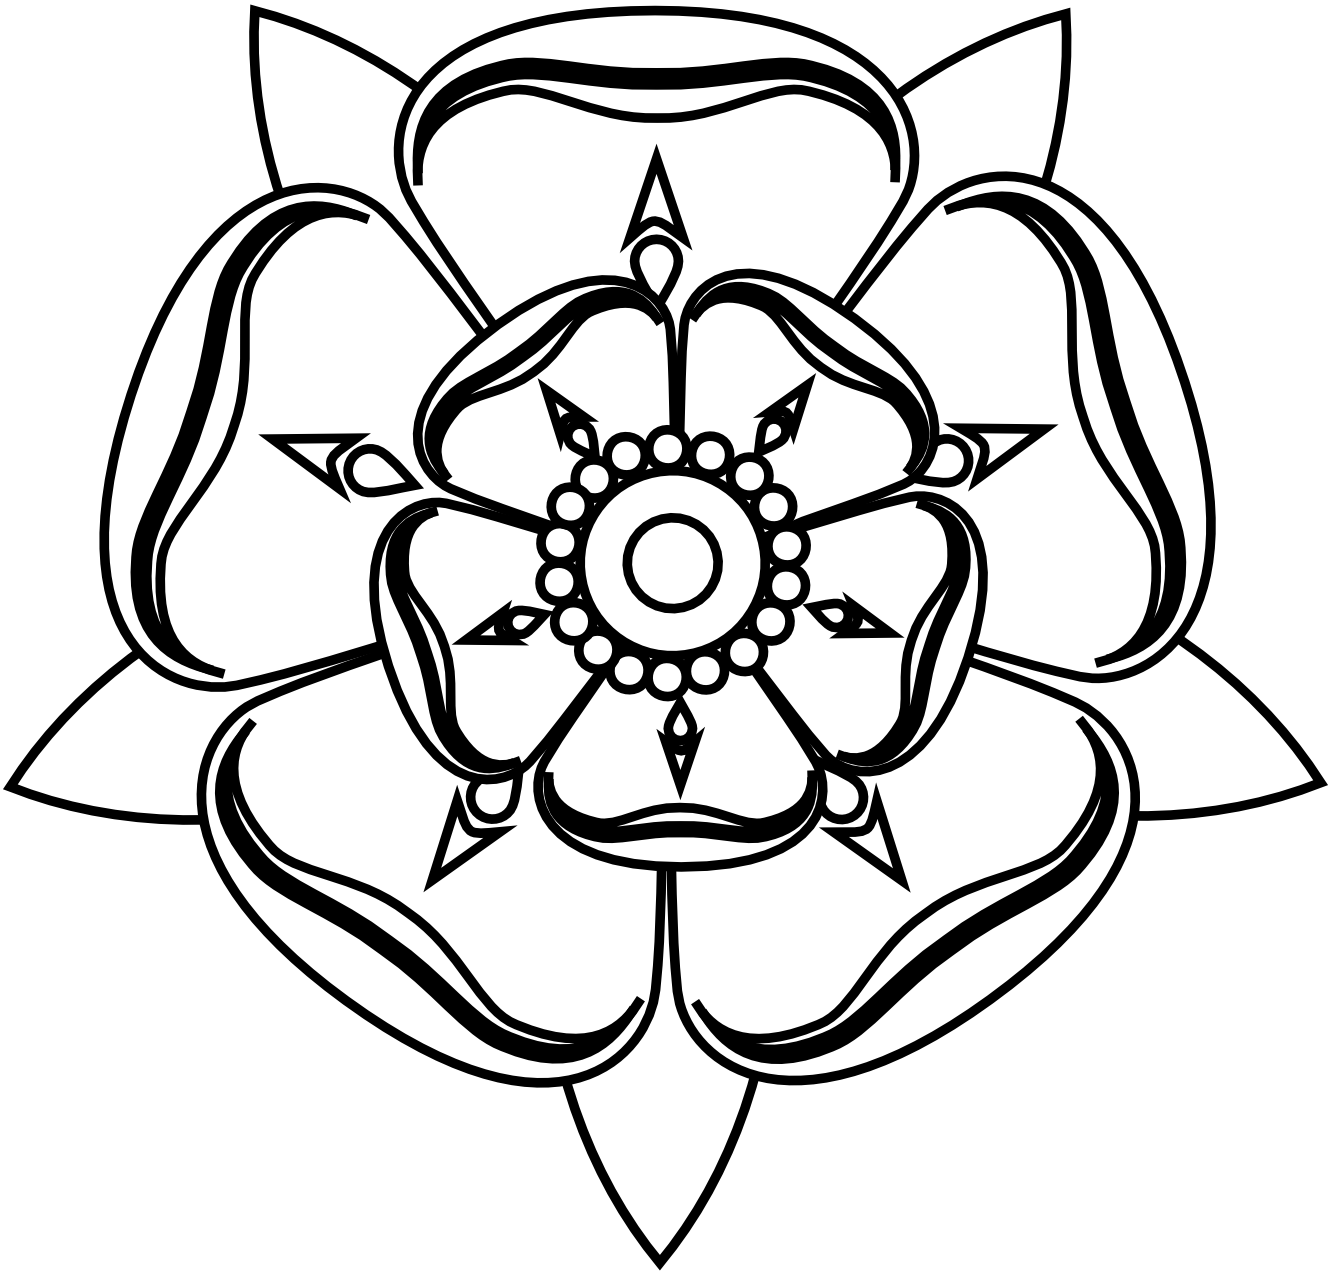 coloring flower clipart black and white spring flowers clipart black and white free download on flower black and clipart coloring white